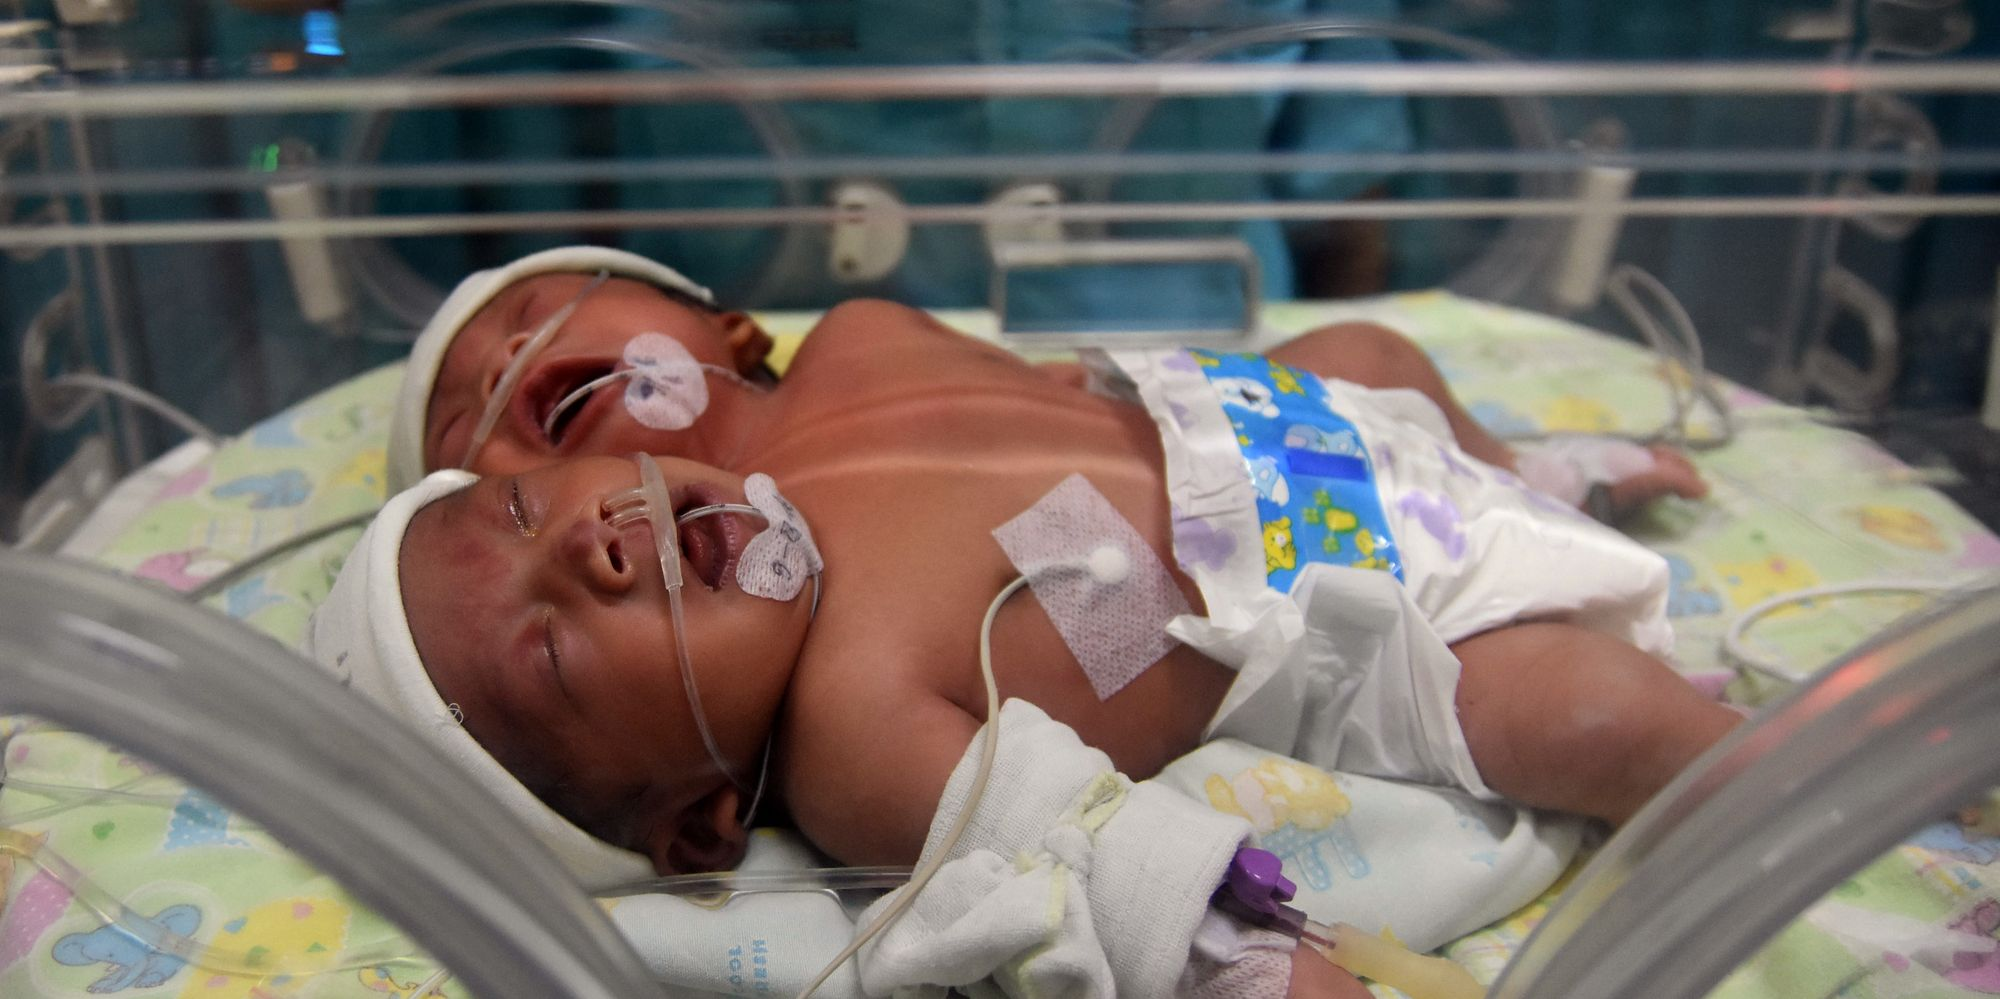 Two-Headed Baby Reportedly Born In Indonesia | HuffPost UK